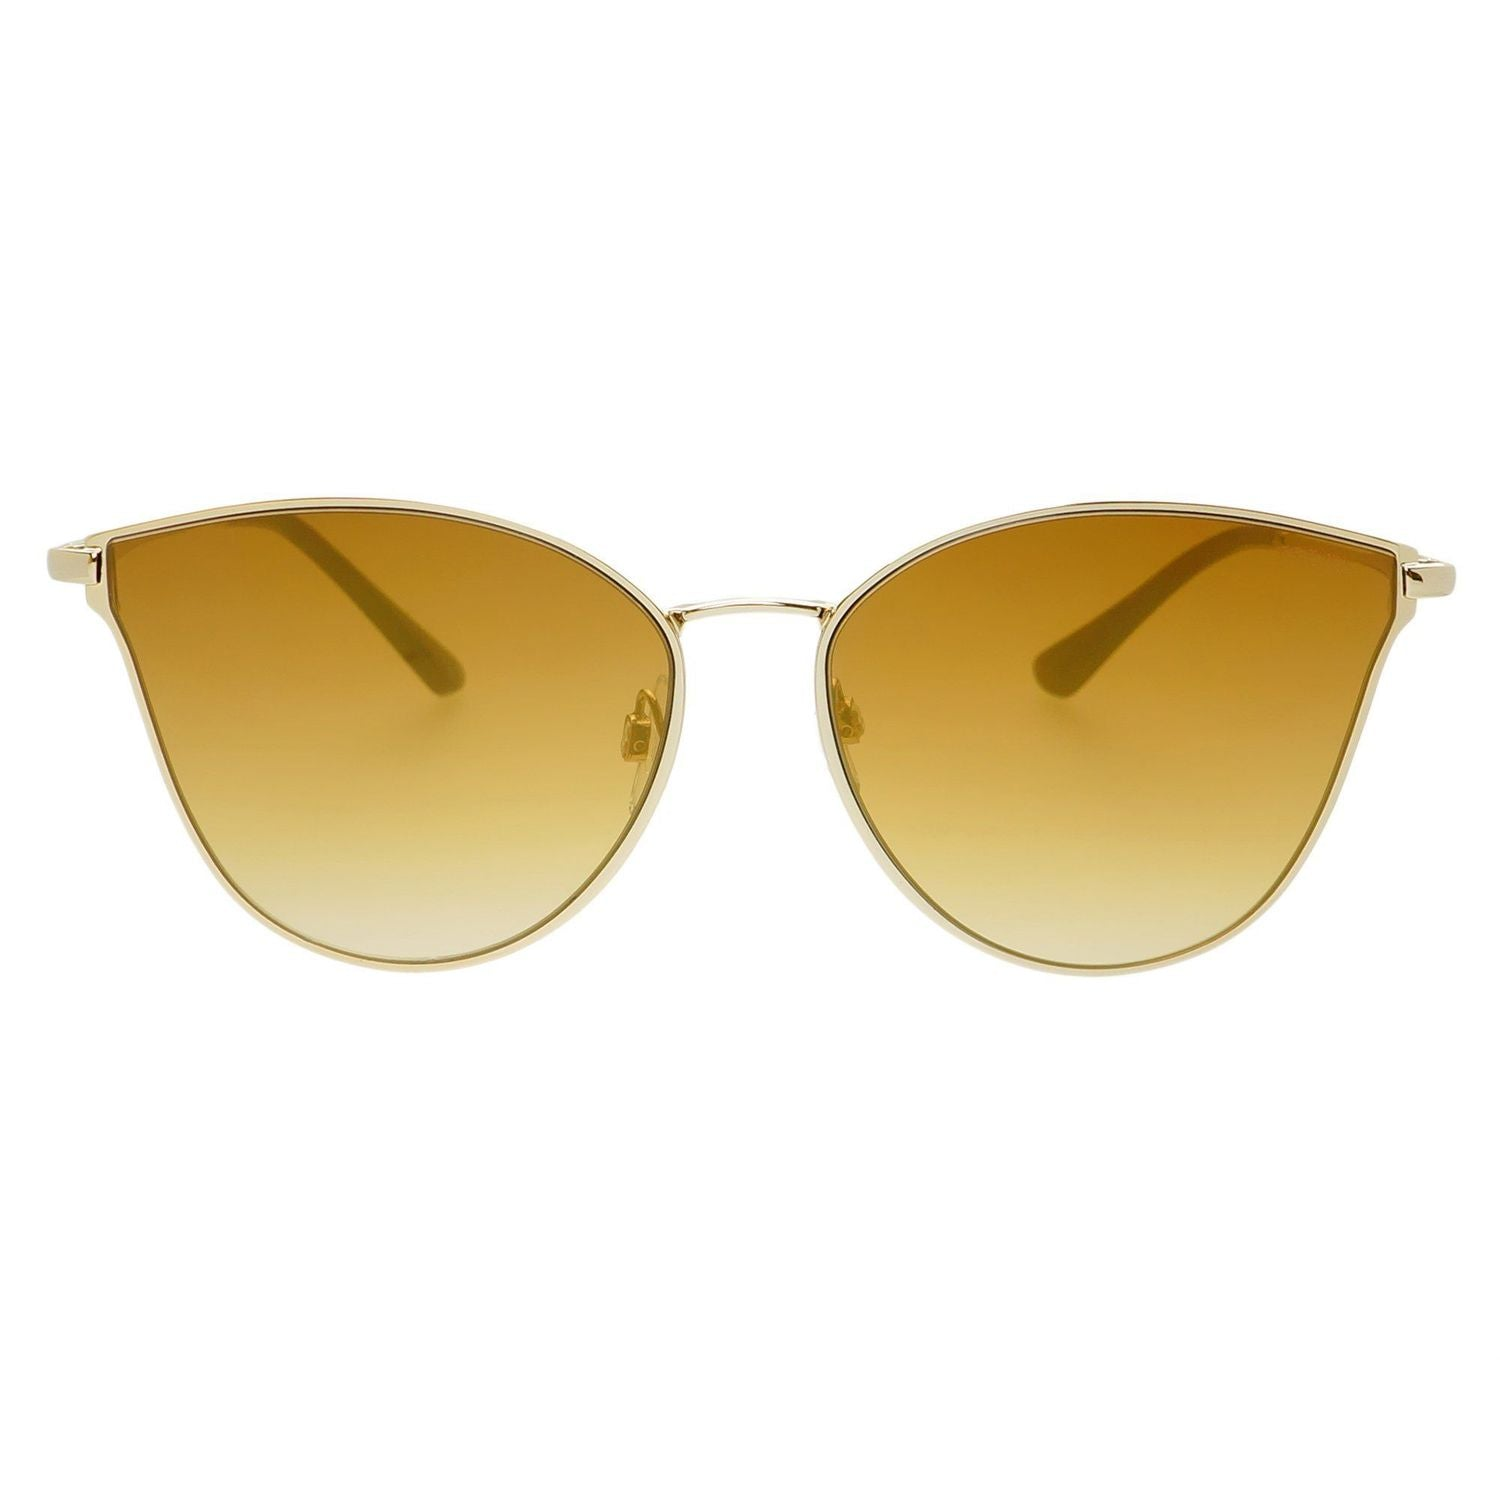 Freyrs Ivy Sunglasses Accessories - Sophie